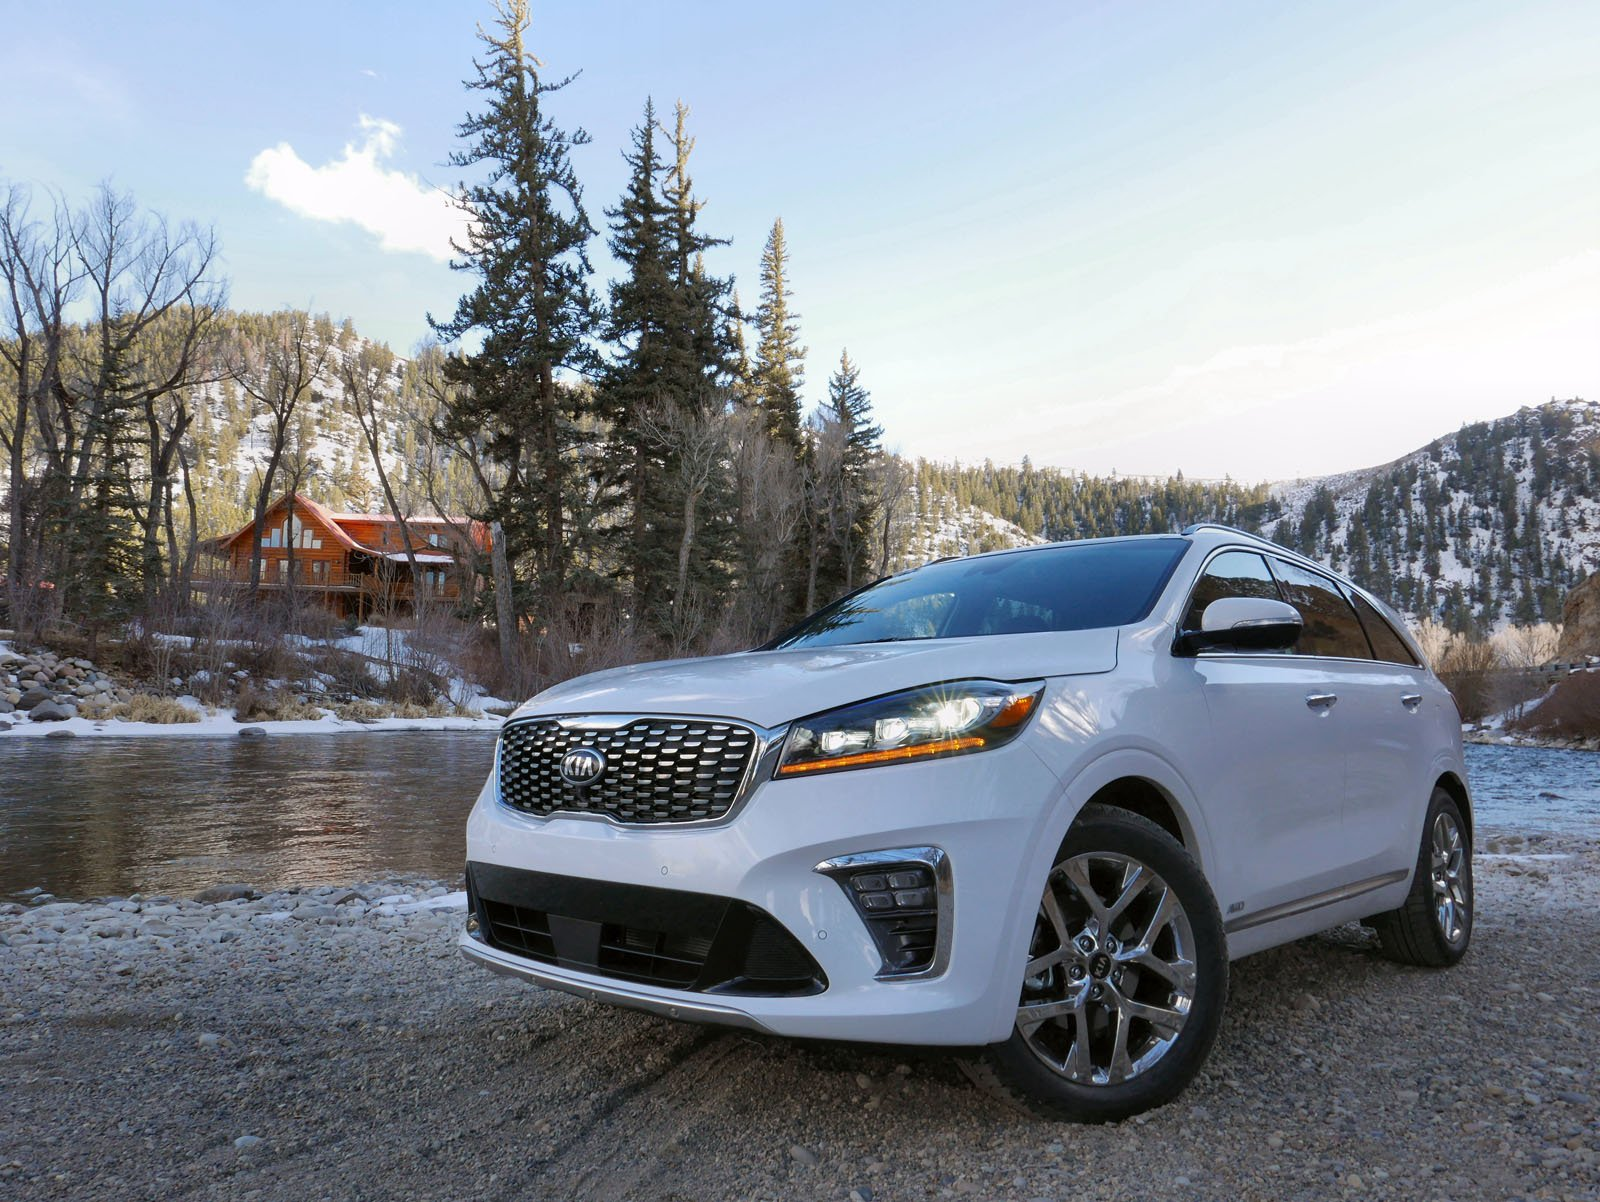 Used Car Loan >> 2019 Kia Sorento Review and First Drive - AutoGuide.com